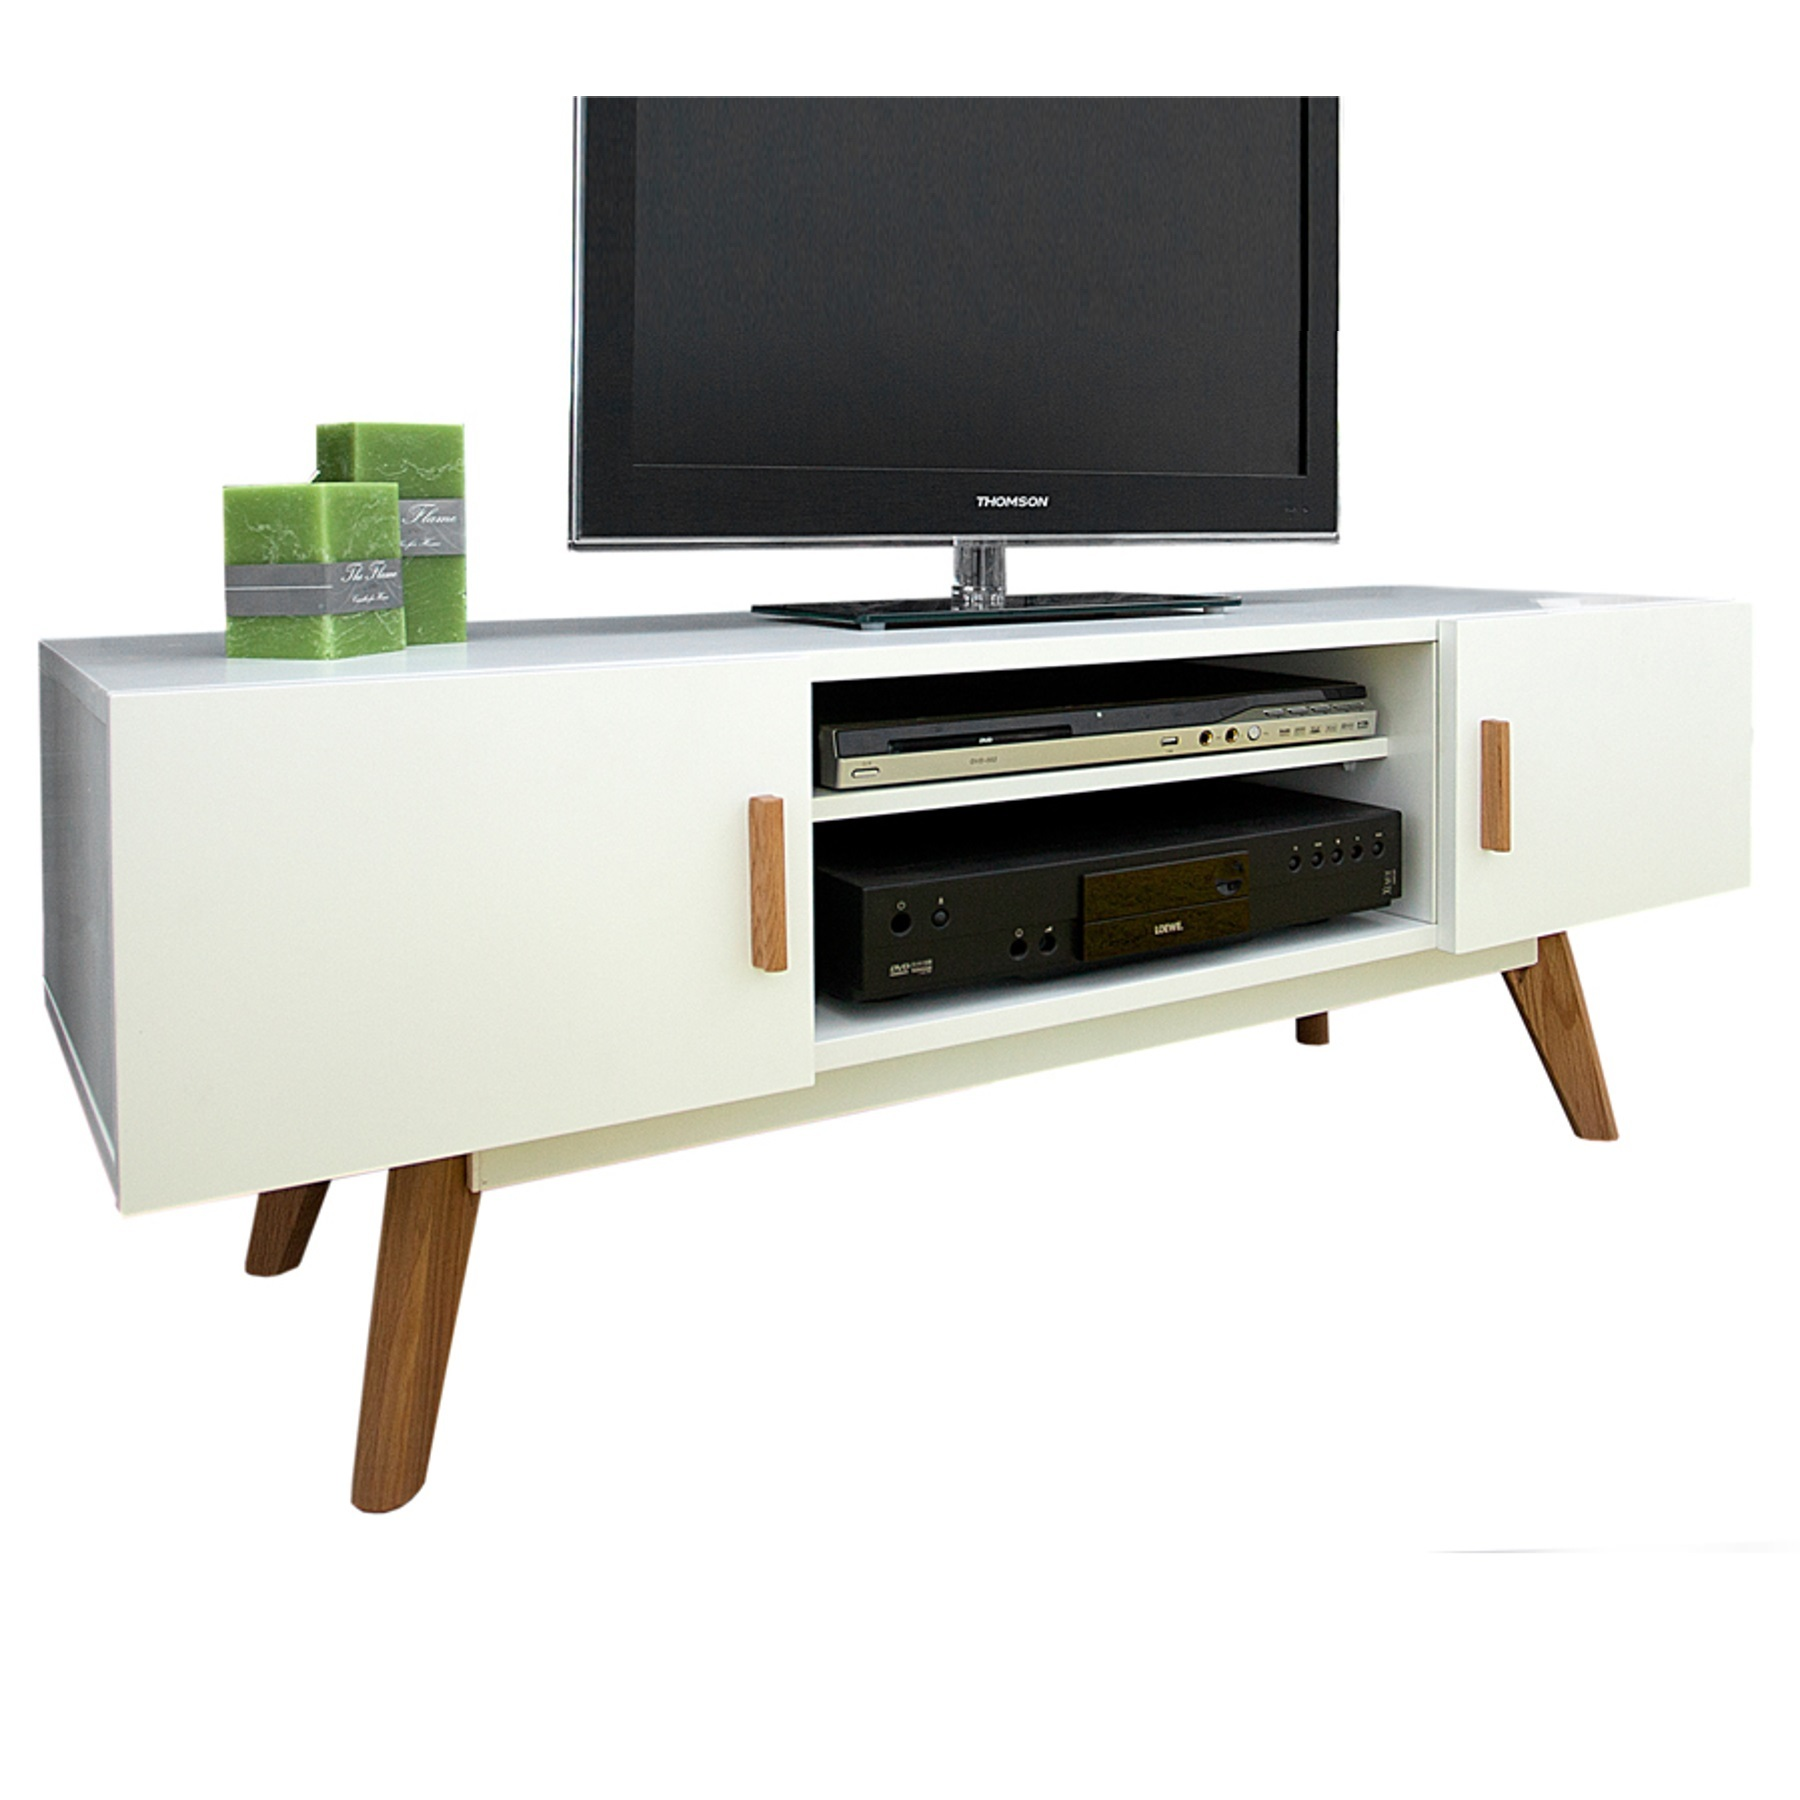 design lowboard scandinavia meisterst ck 120cm wei echt eiche tv board schrank ebay. Black Bedroom Furniture Sets. Home Design Ideas